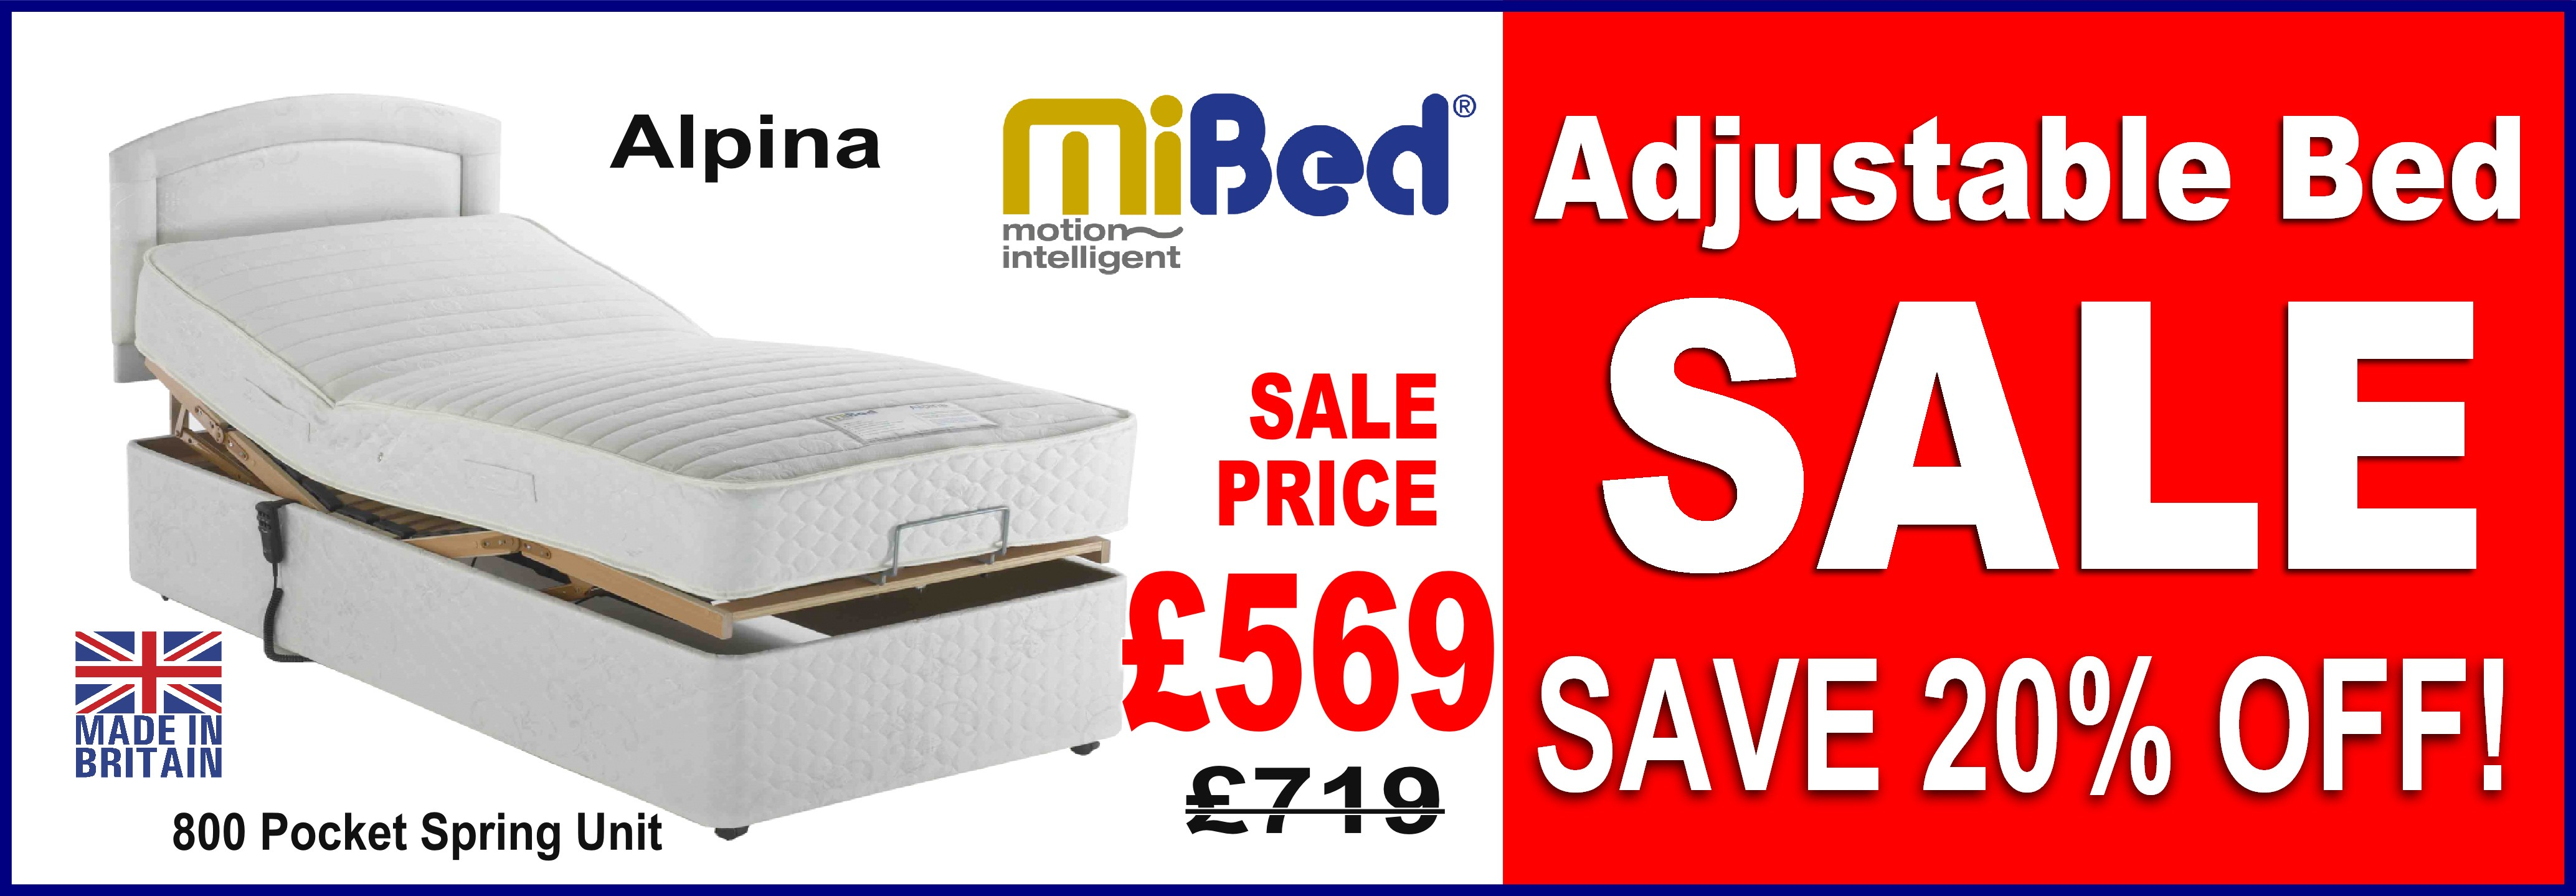 Adjustable bed sale